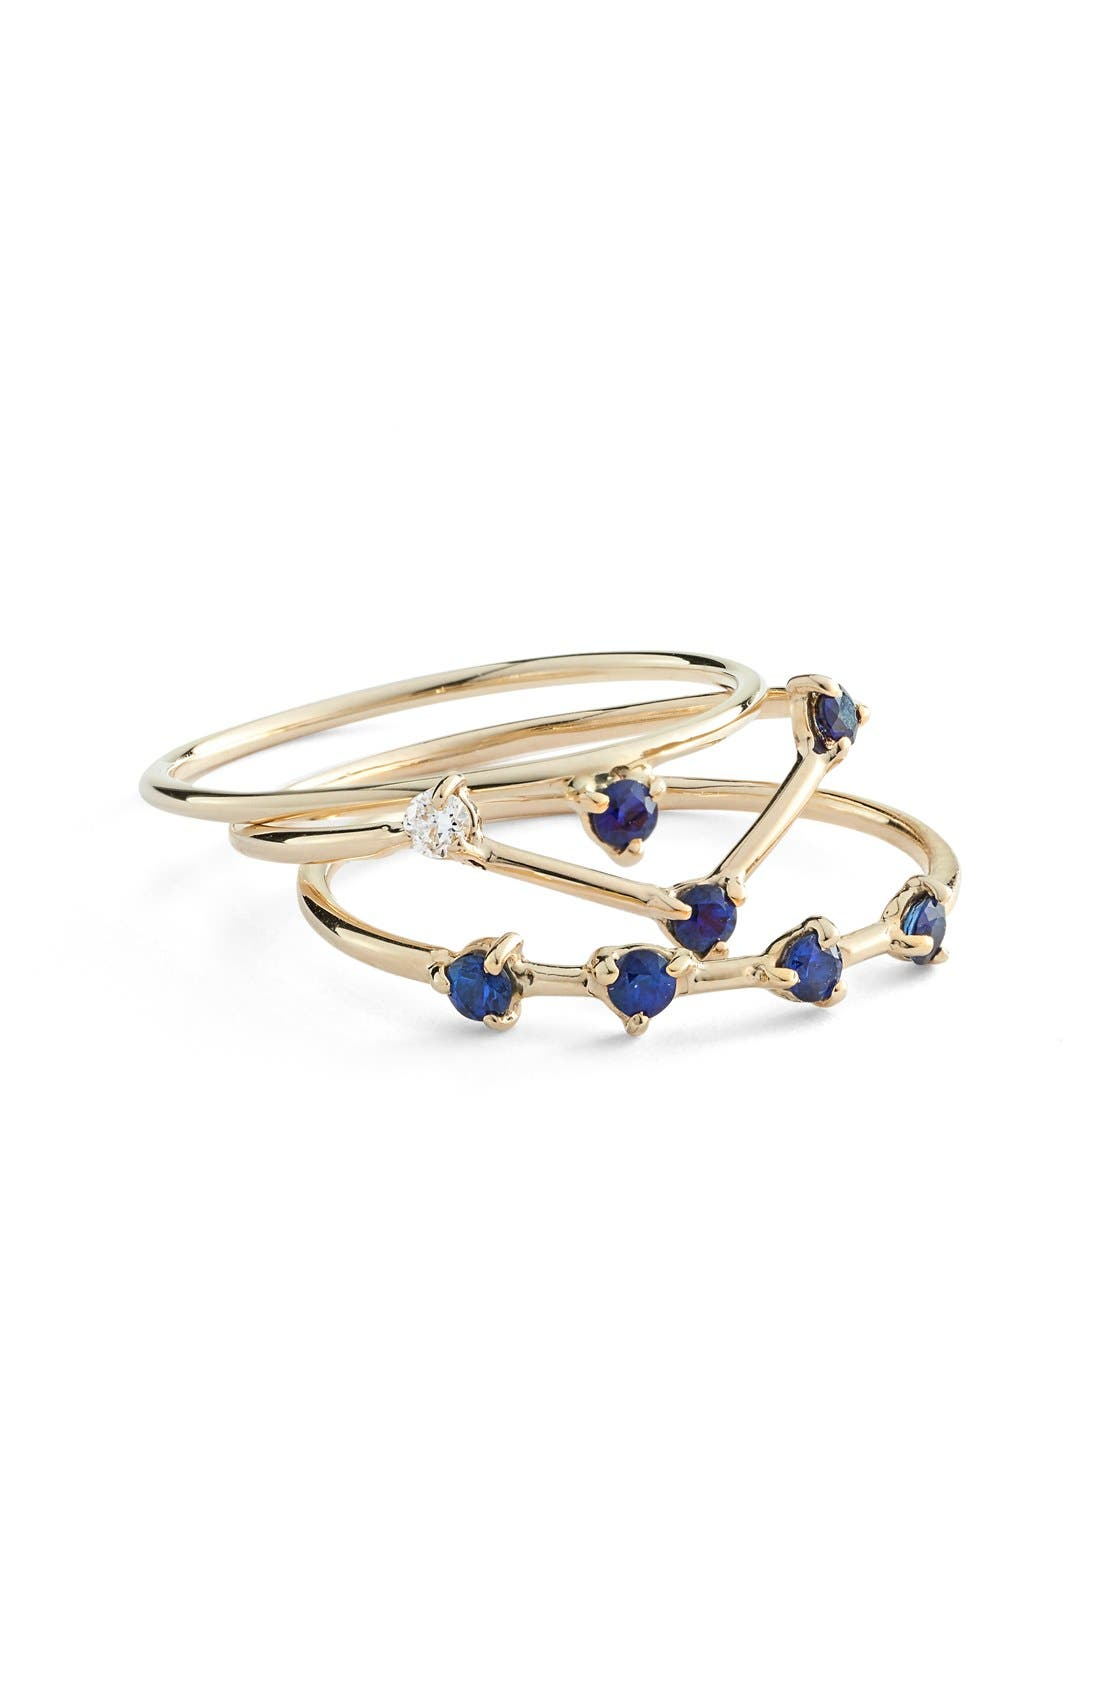 One Step Ring,                             Alternate thumbnail 2, color,                             YELLOW GOLD